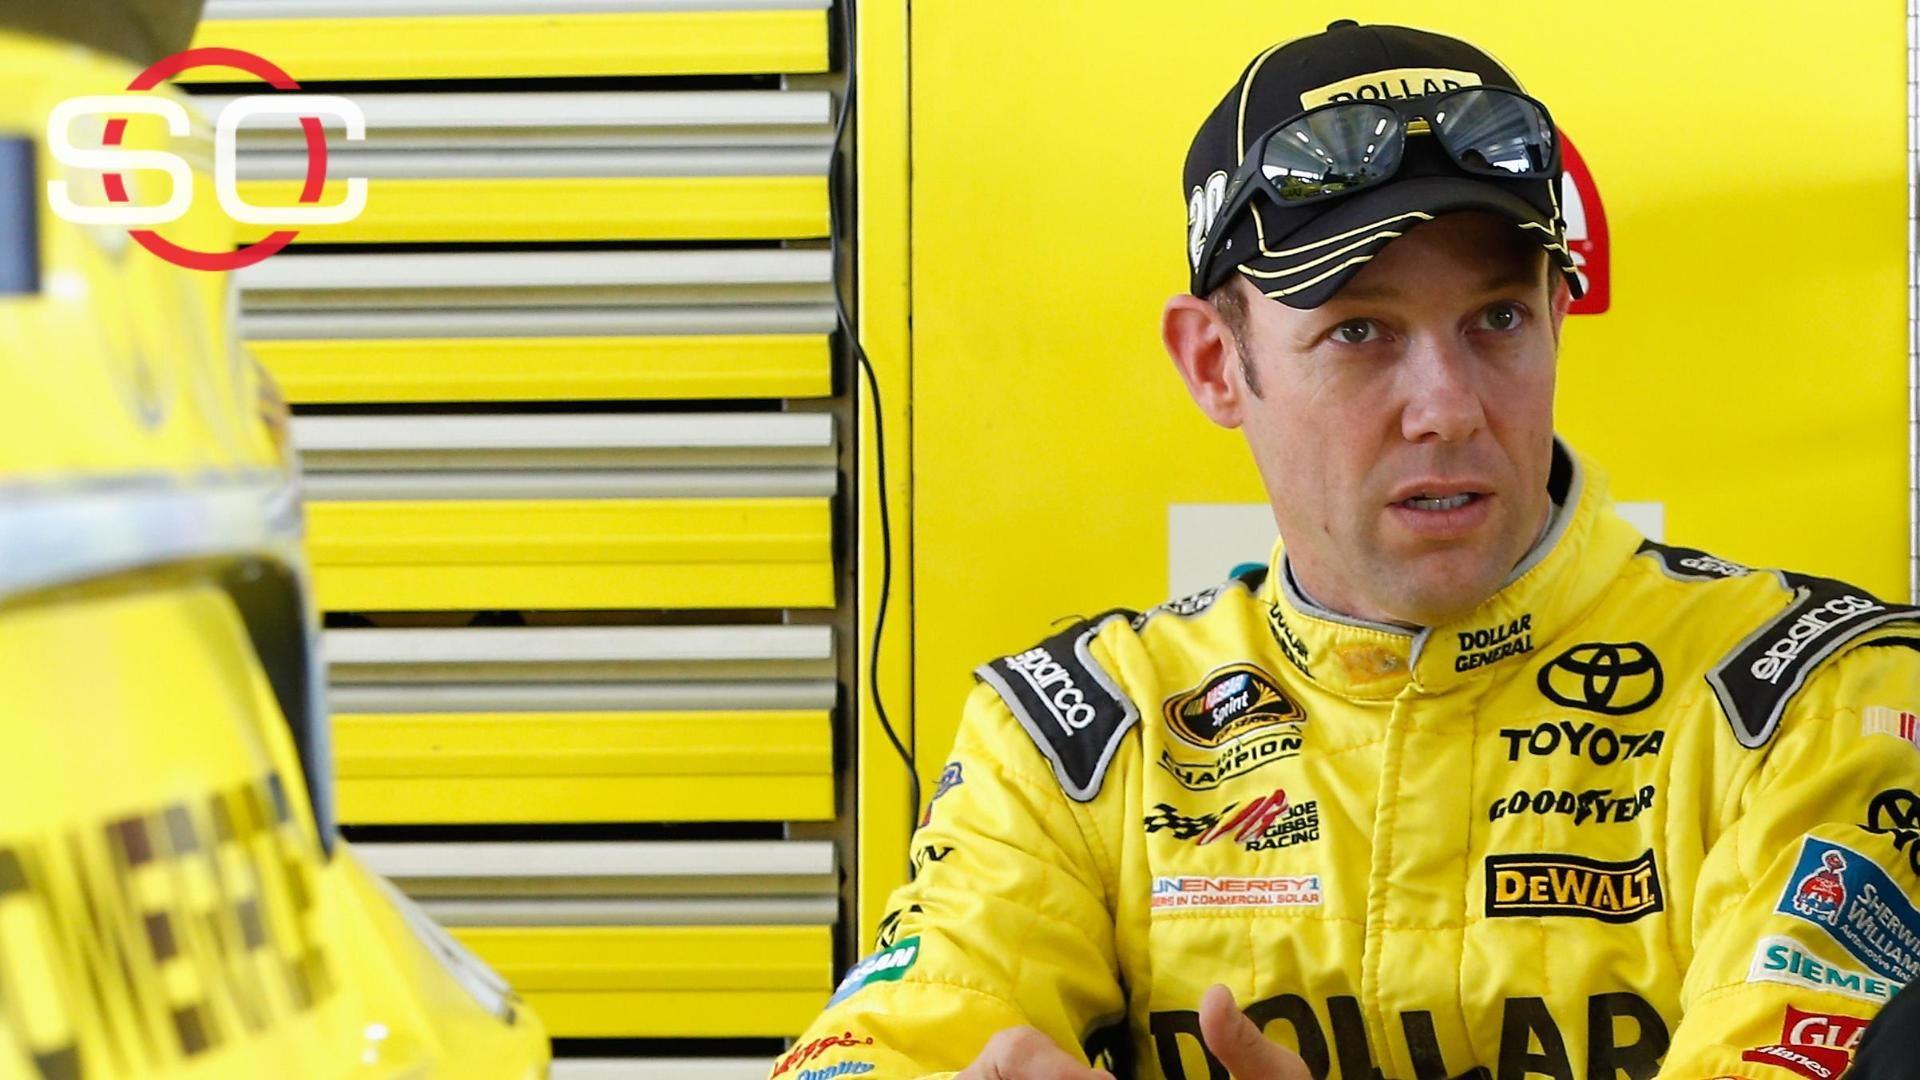 Kenseth meets with Logano before return - ESPN Video